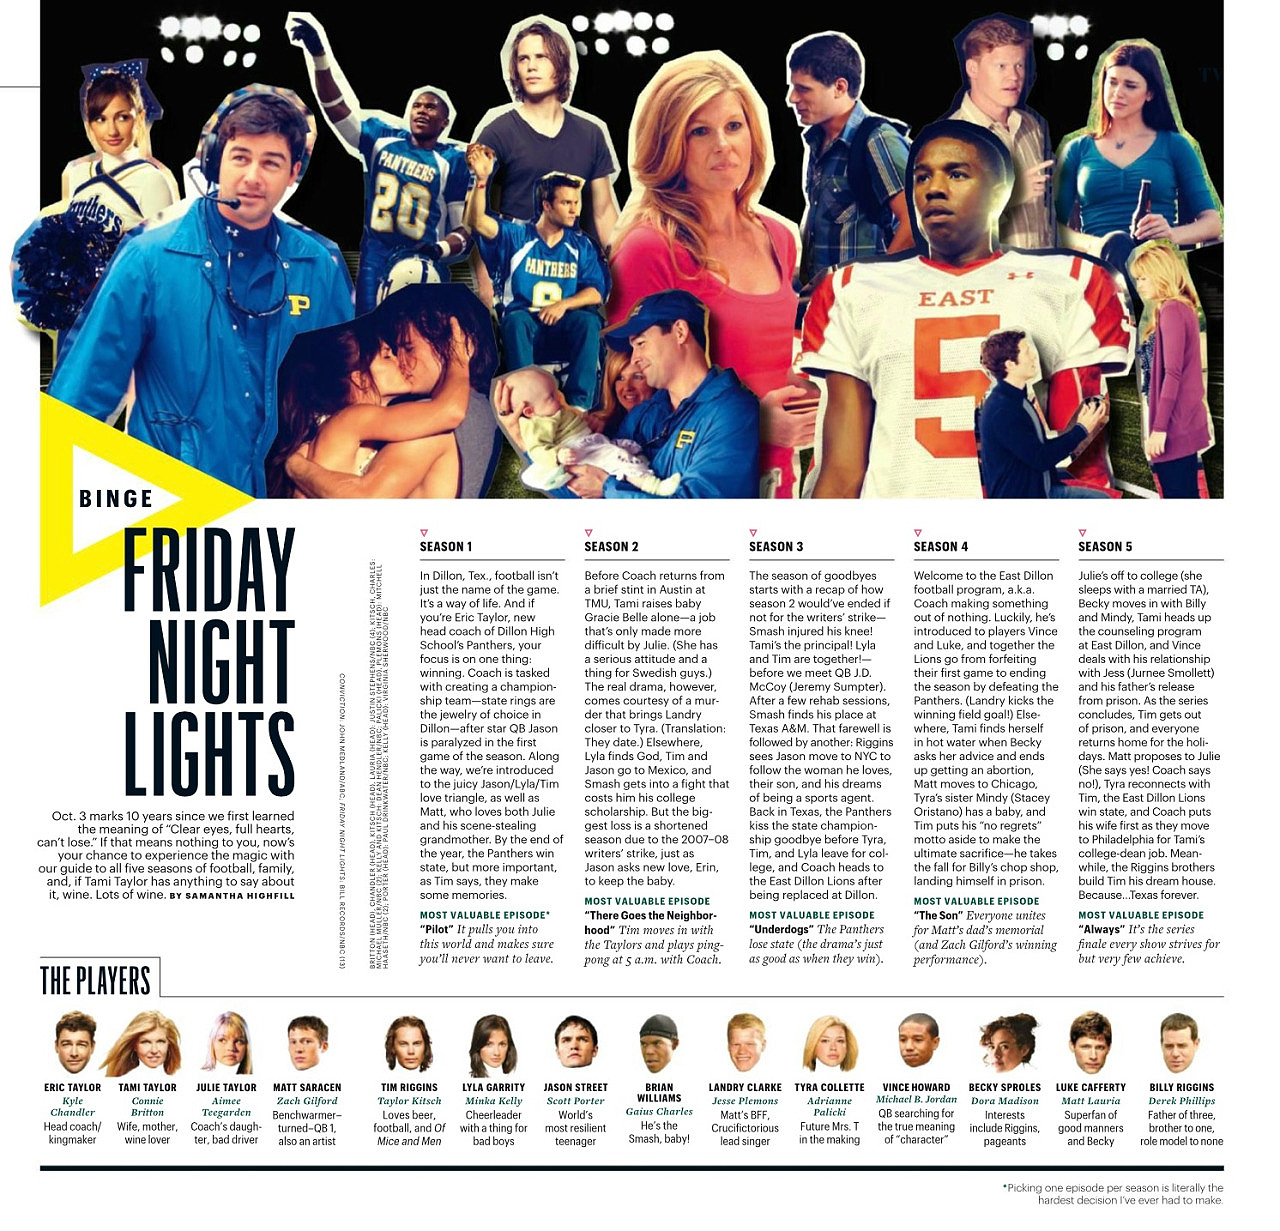 Friday Night Lights in Enteratinment Weekly - October 2016